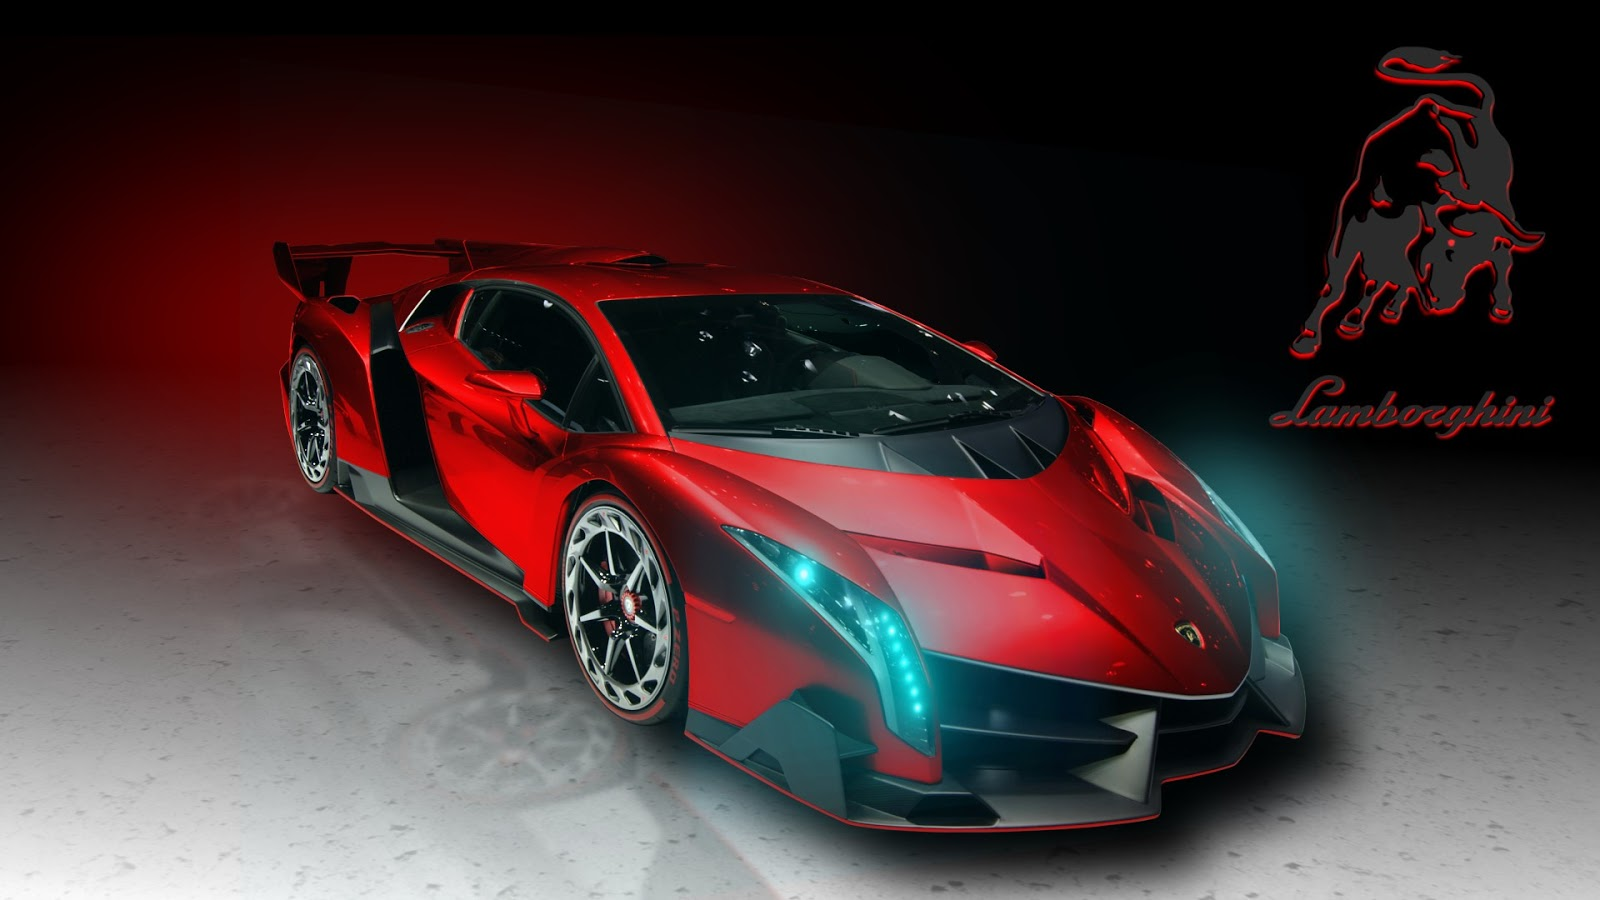 Daily Amazing Fun: Car Wallpapers Lamborghini In Red